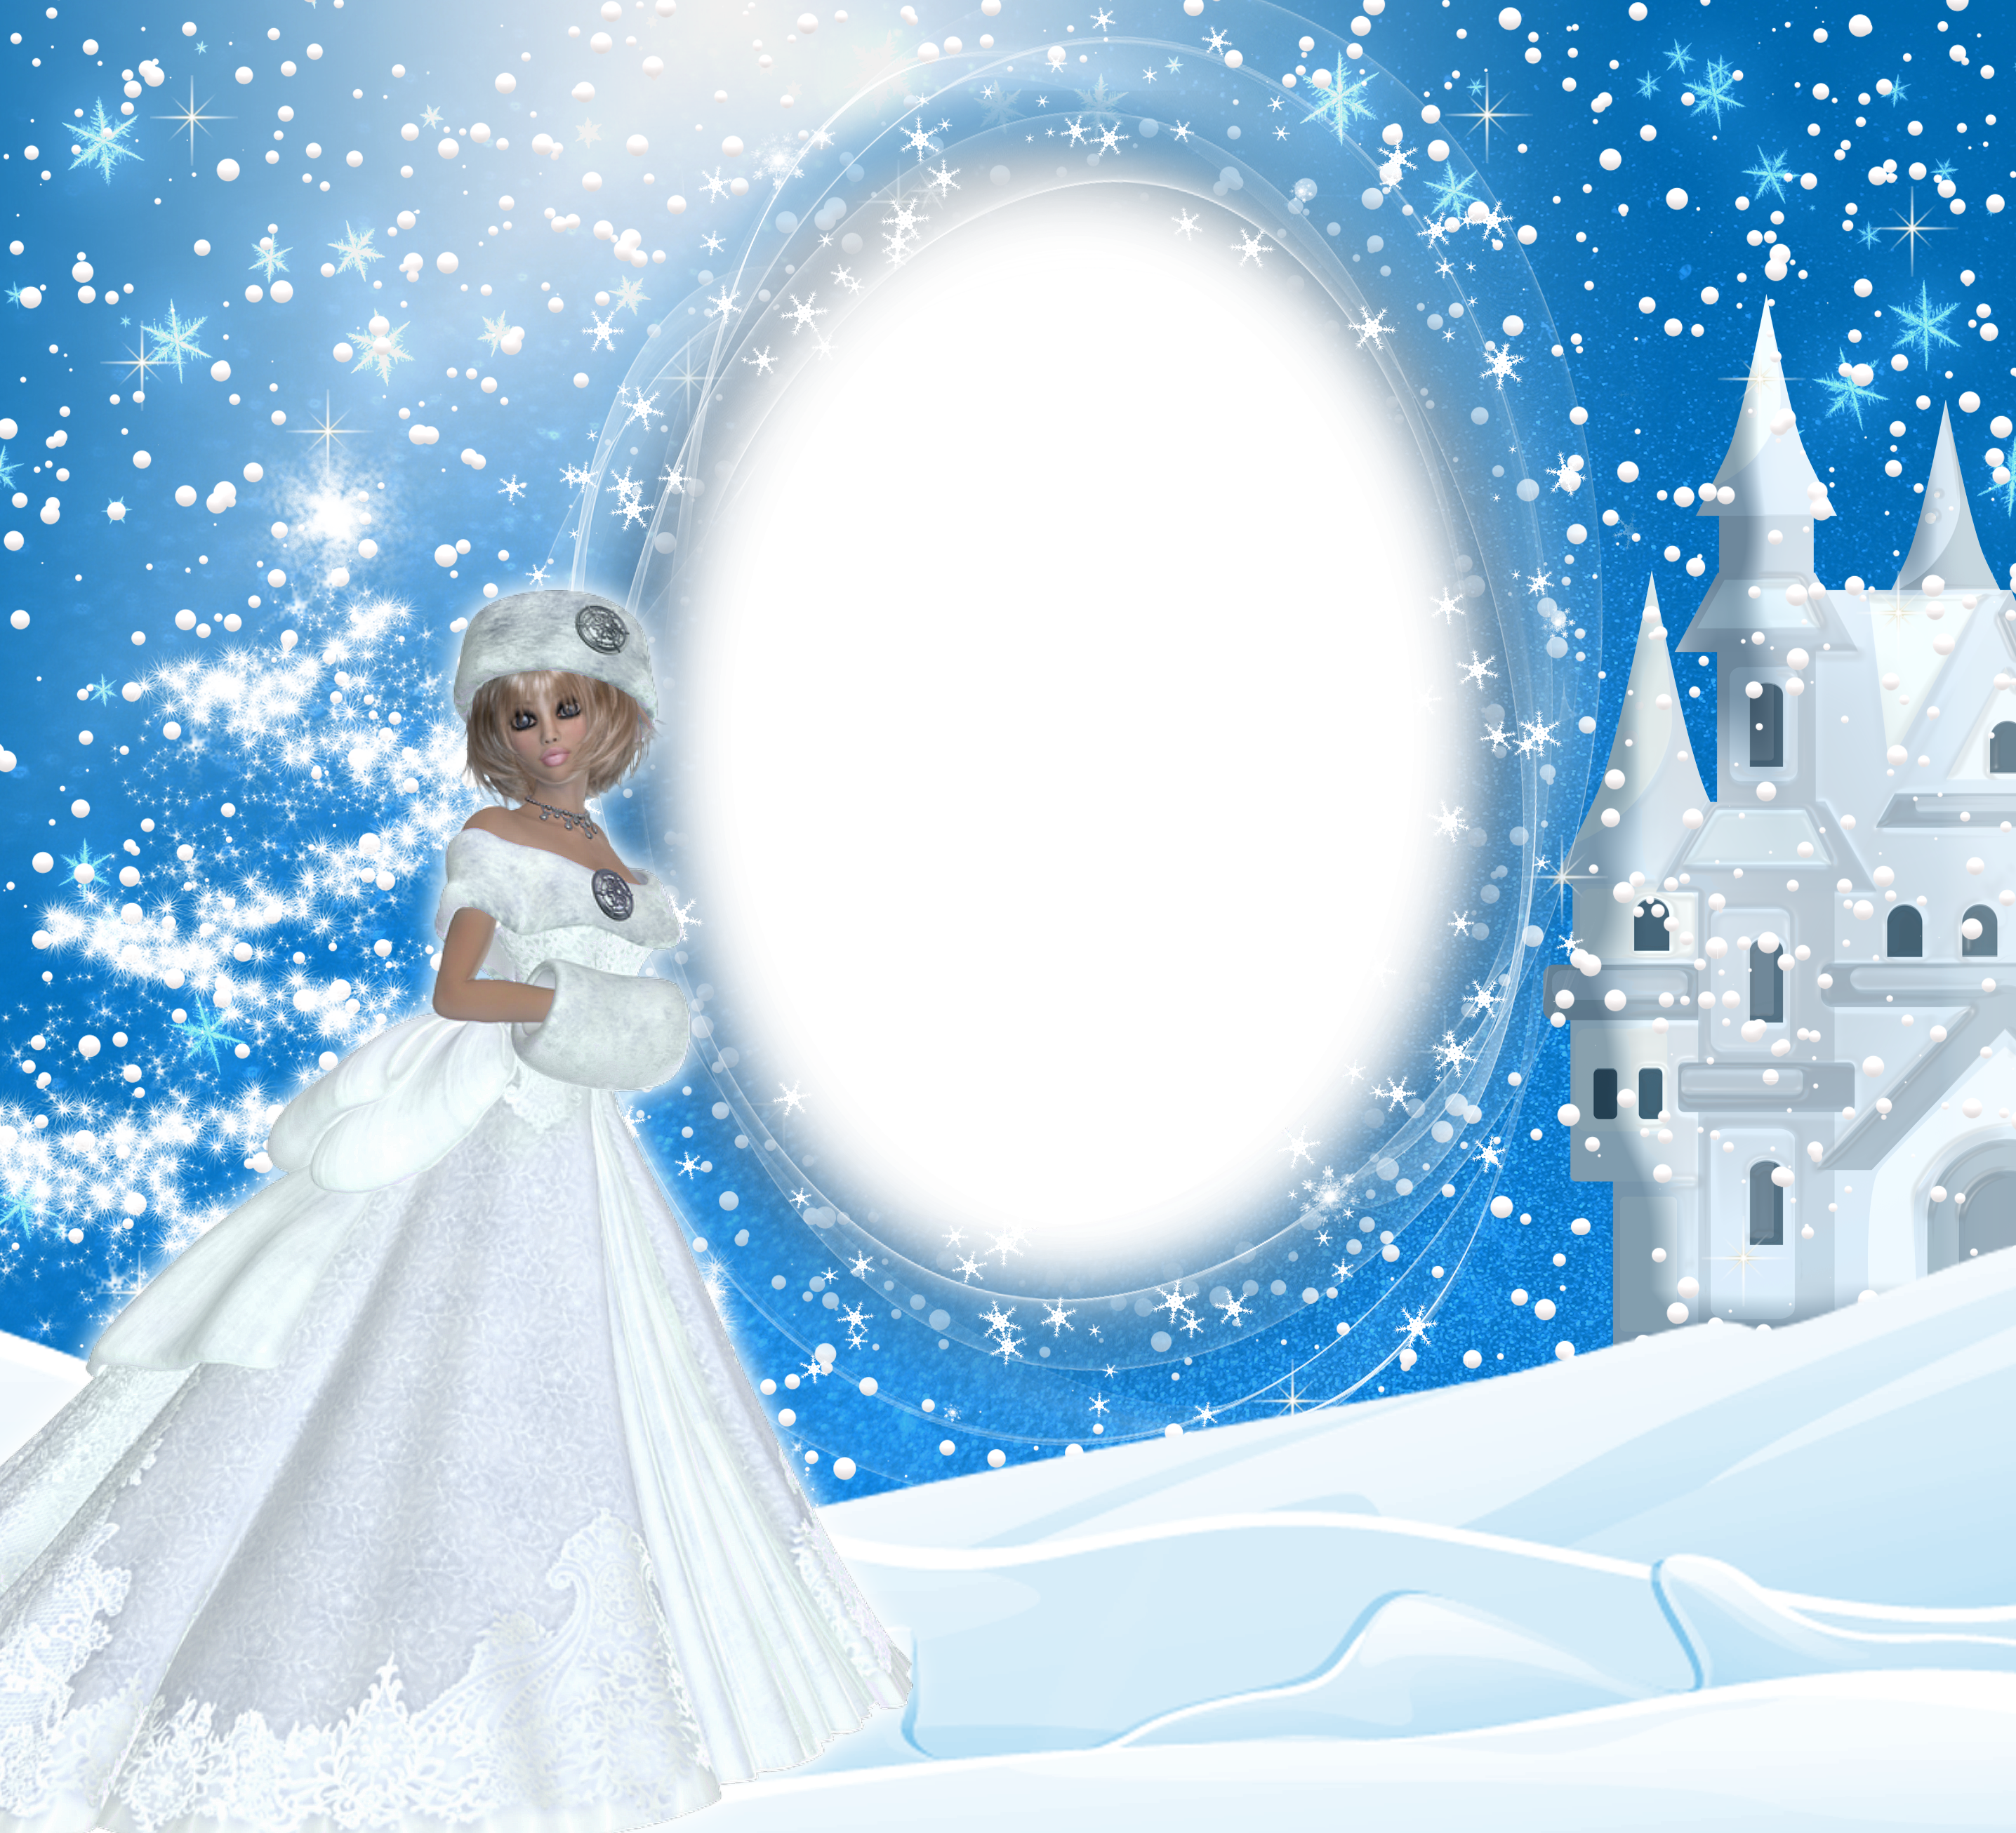 Winter frames png. Snow lady frame gallery